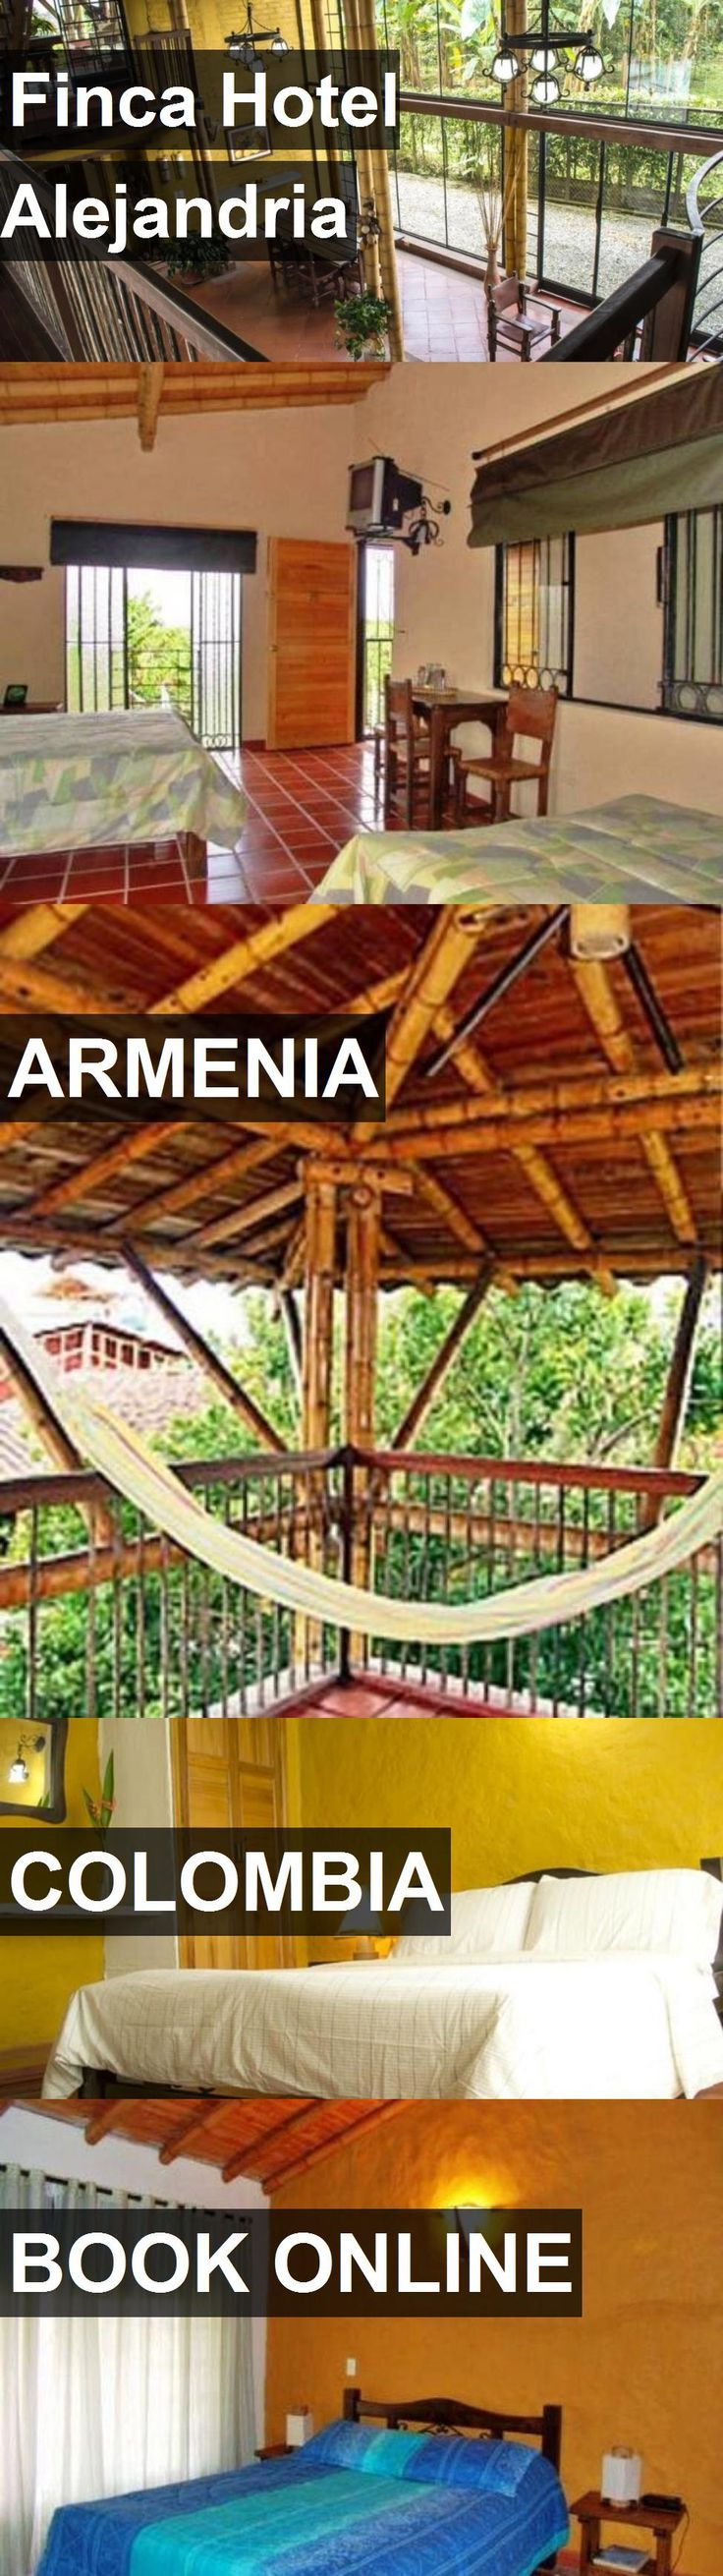 Finca Hotel Alejandria in Armenia, Colombia. For more information, photos, reviews and best prices please follow the link. #Colombia #Armenia #travel #vacation #hotel